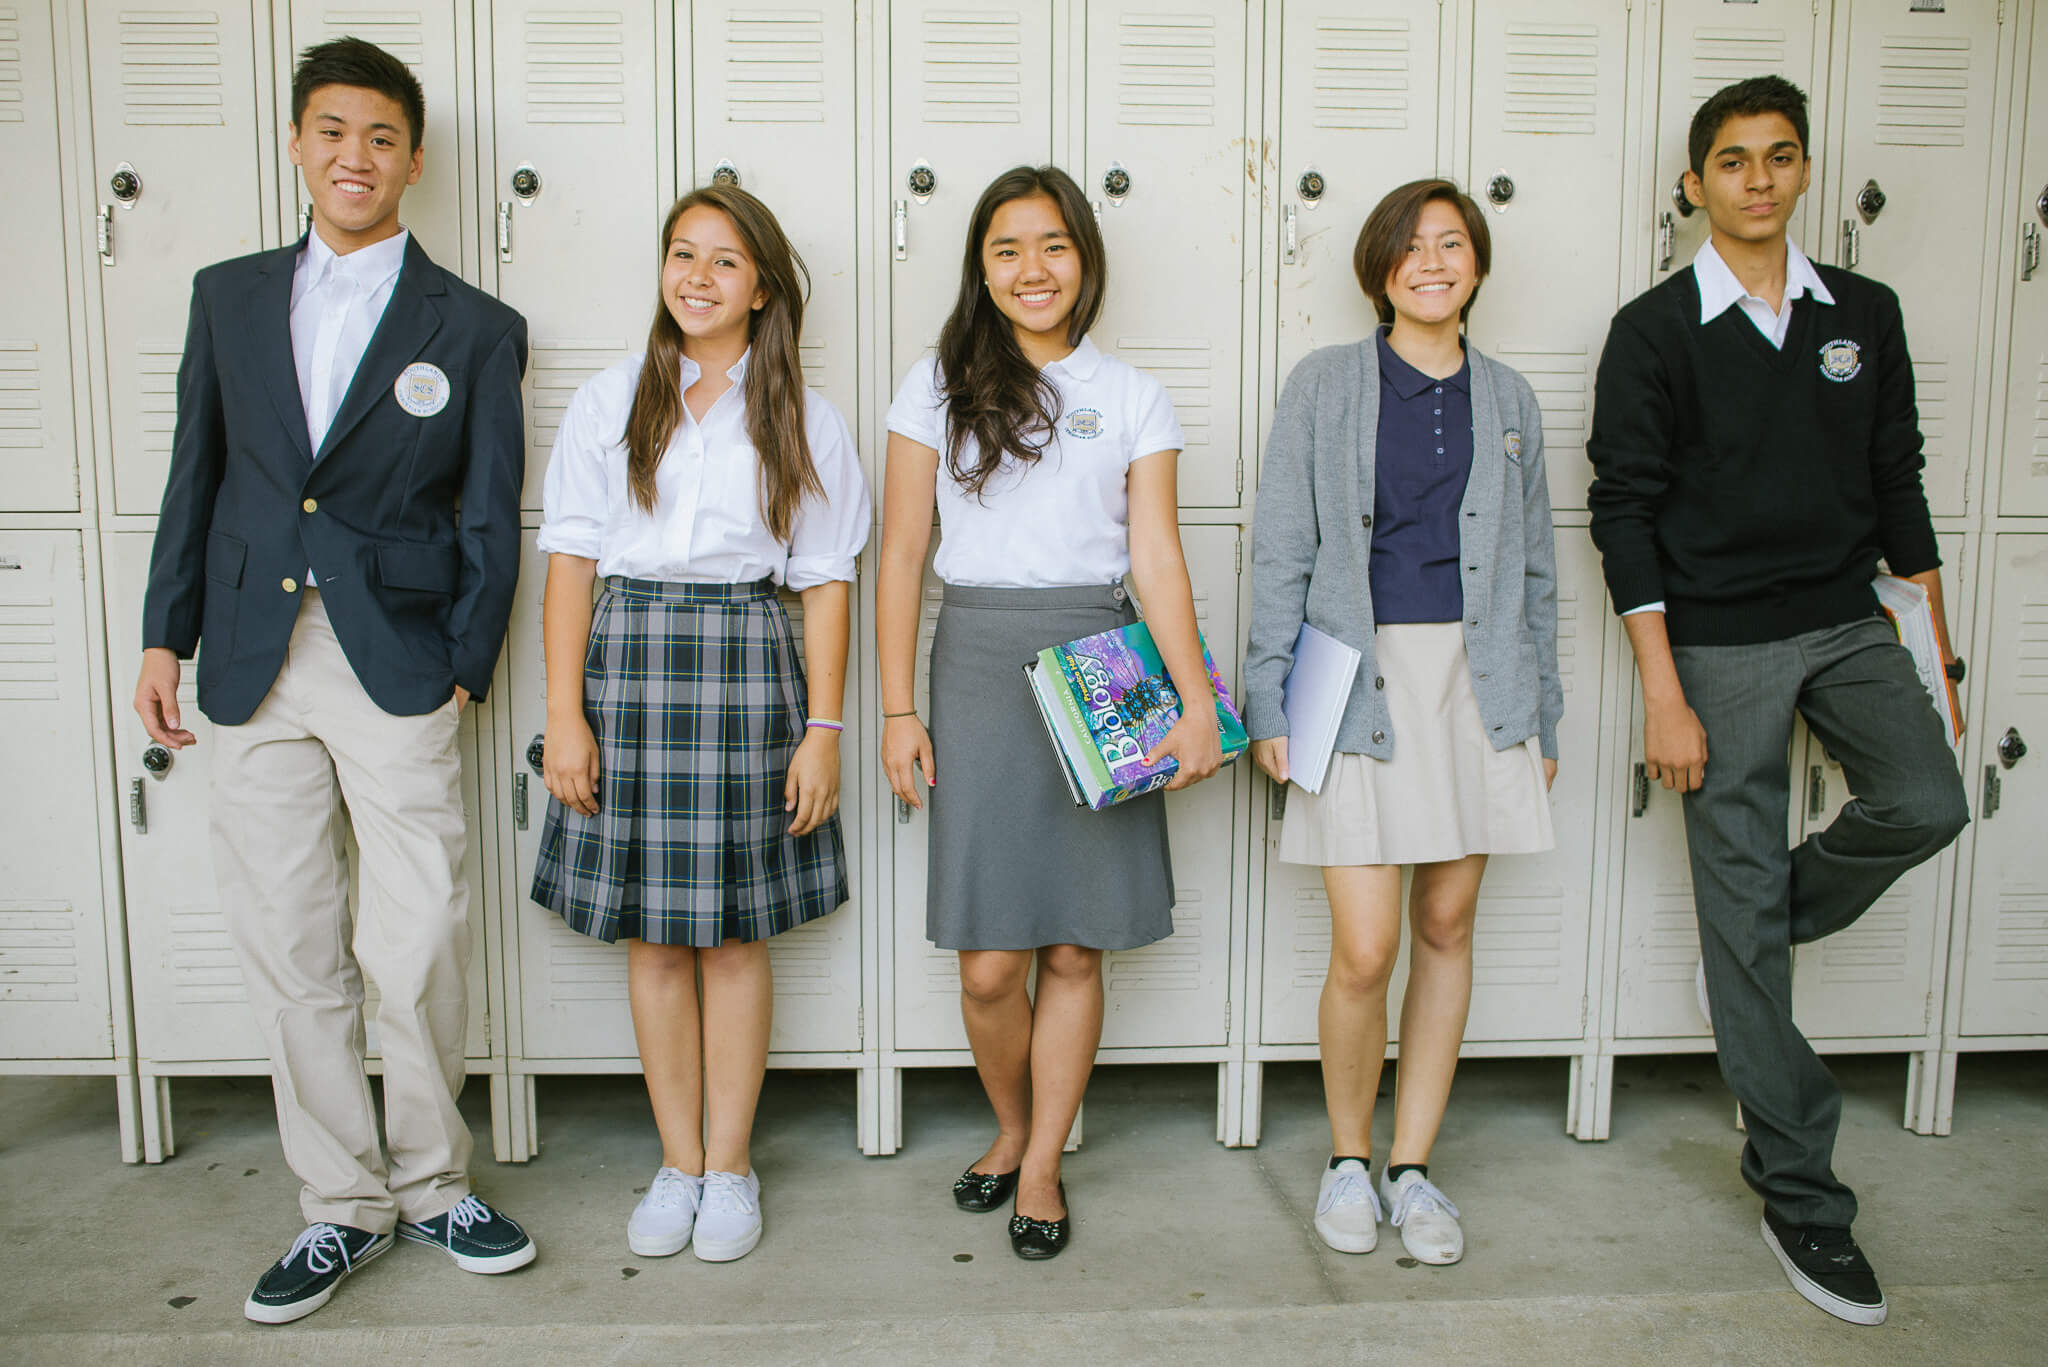 the common problem of the school uniforms What are the biggest problems facing the public school system  editorial: common core standards a good place to start, but more work is needed  10 major challenges facing public.